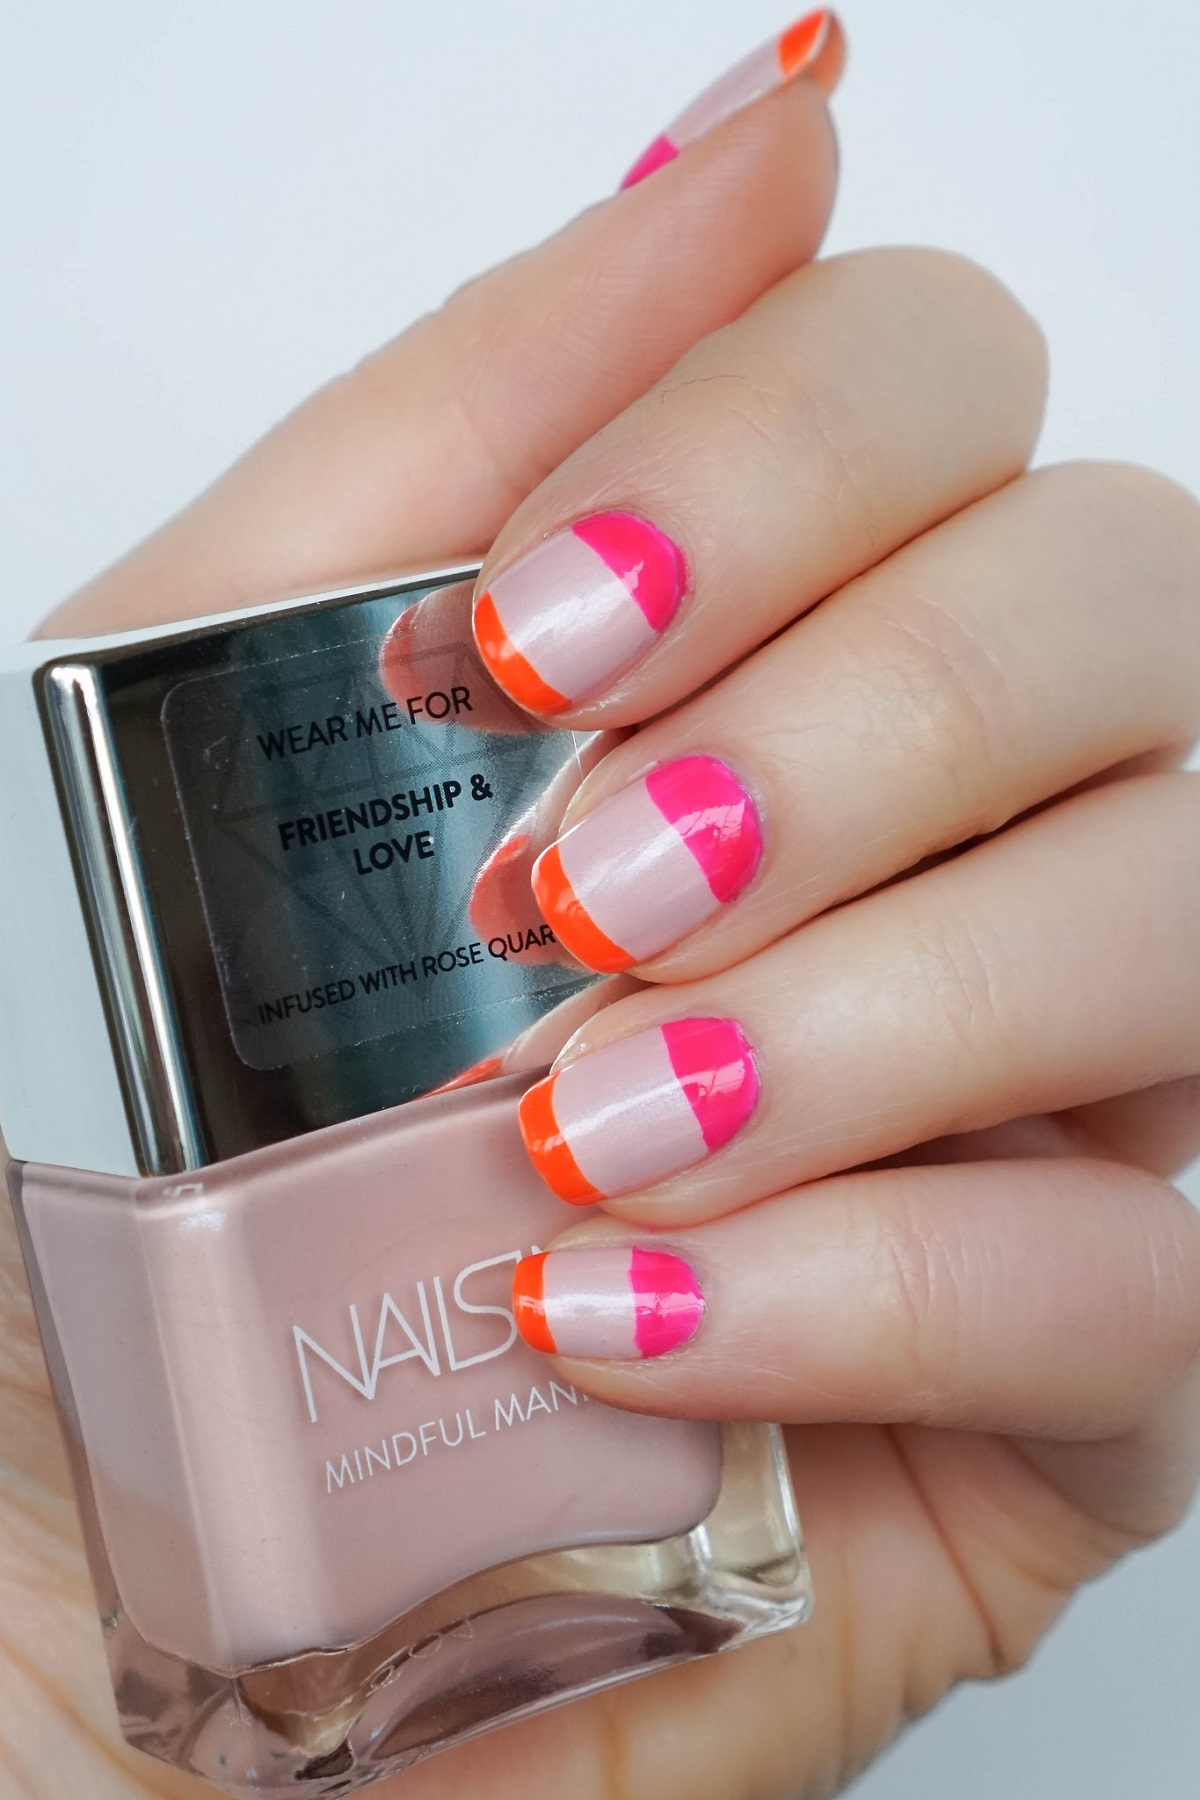 Blush and Bold Manicure with Crystal Infused Nail Polish